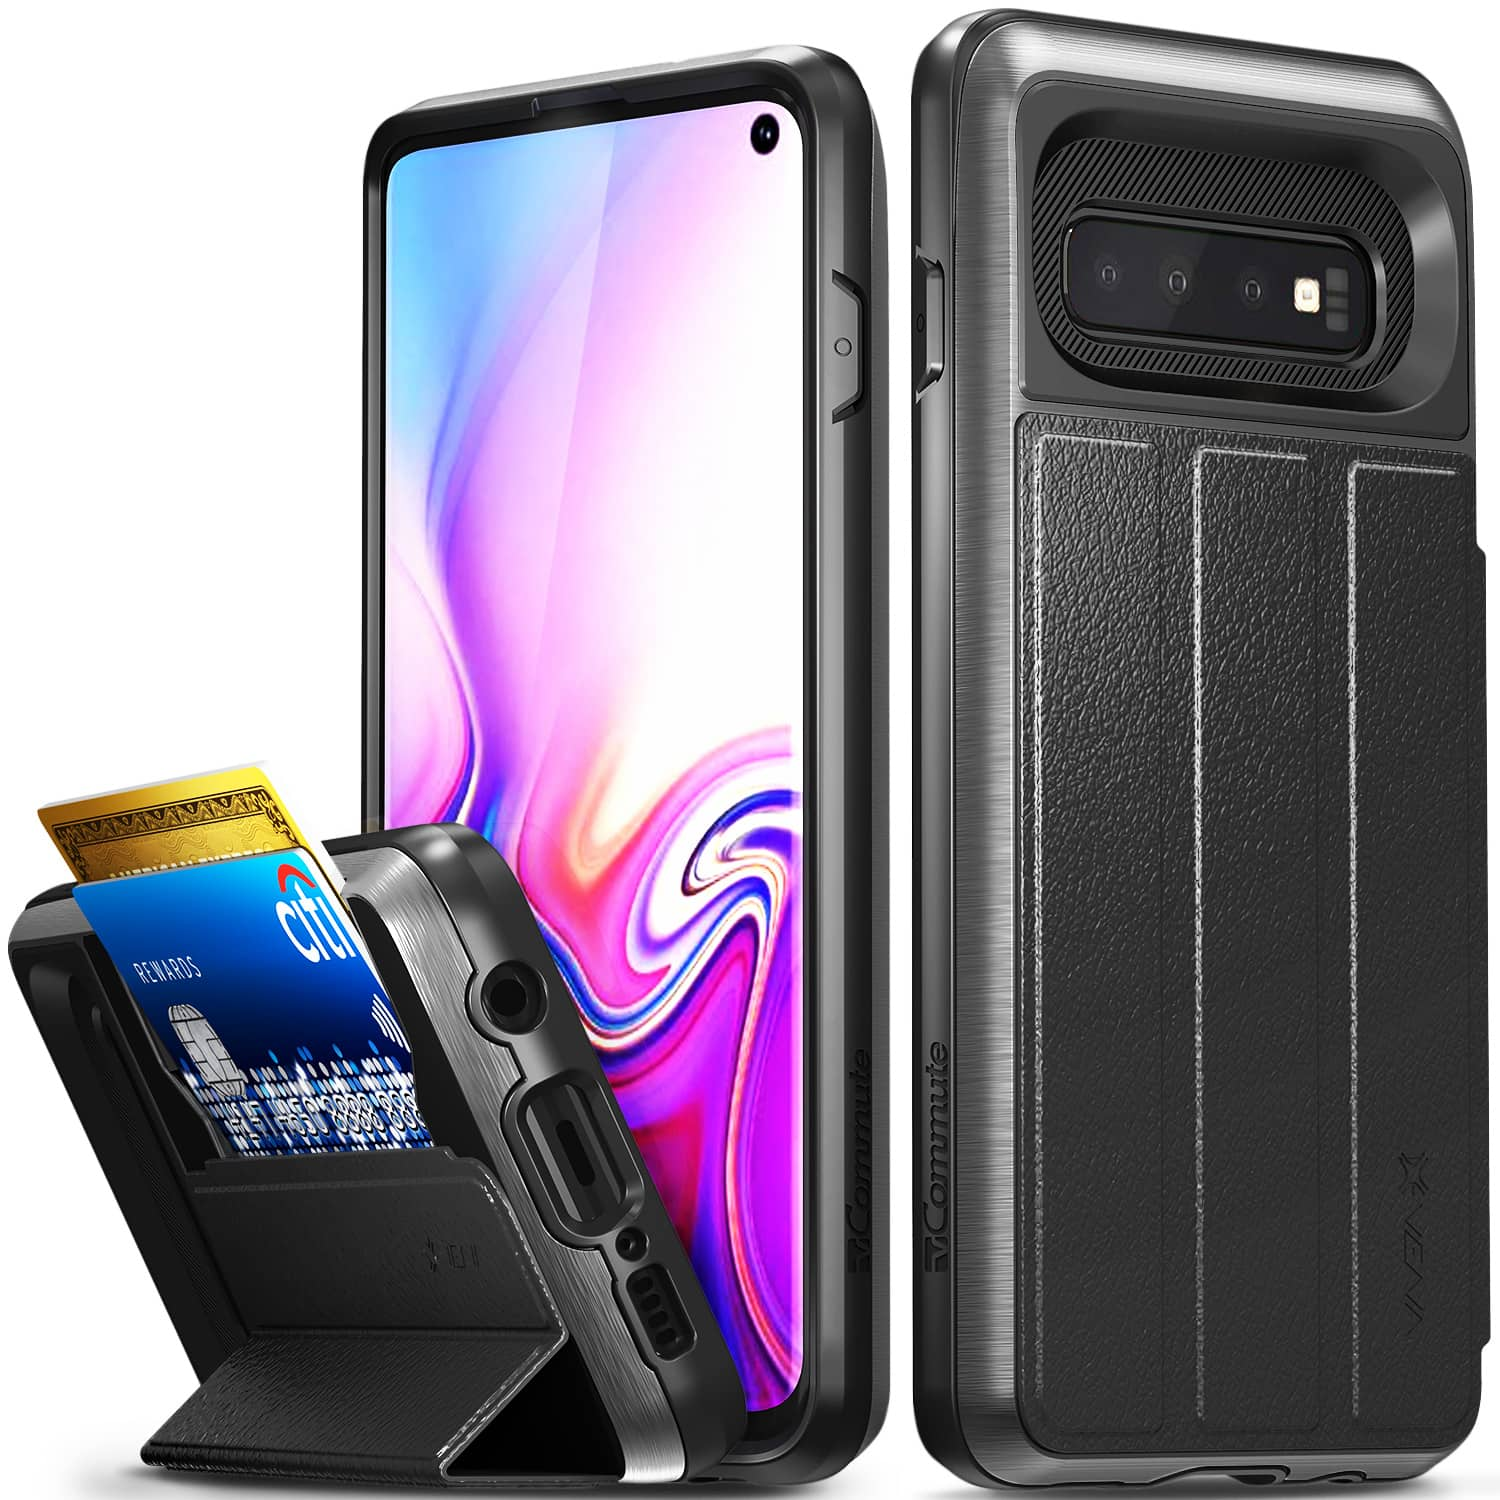 Vena Galaxy S10, S10e, S10 Plus, iPhone 8 Plus, iPhone 8, and iPhone 7 Plus Cases: Starting from $1.99 + Free Shipping